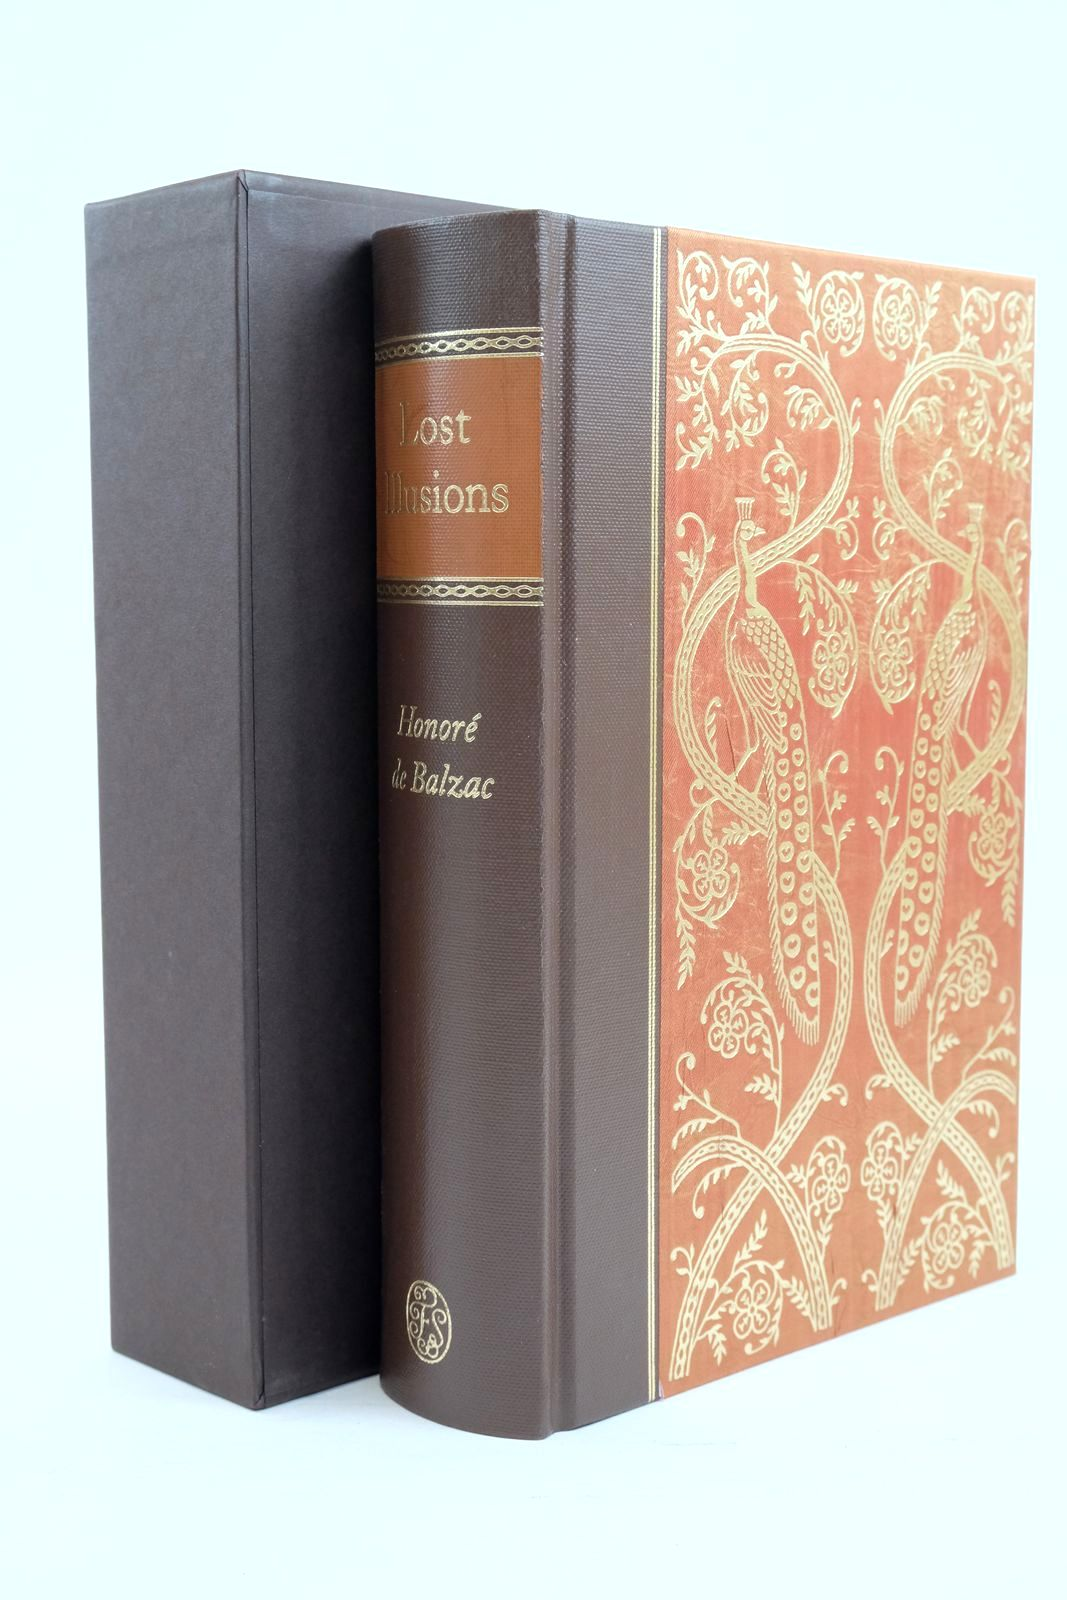 Photo of LOST ILLUSIONS written by De Balzac, Honore Hunt, Herbert J. Robb, Graham illustrated by Mosley, Francis published by Folio Society (STOCK CODE: 1320846)  for sale by Stella & Rose's Books